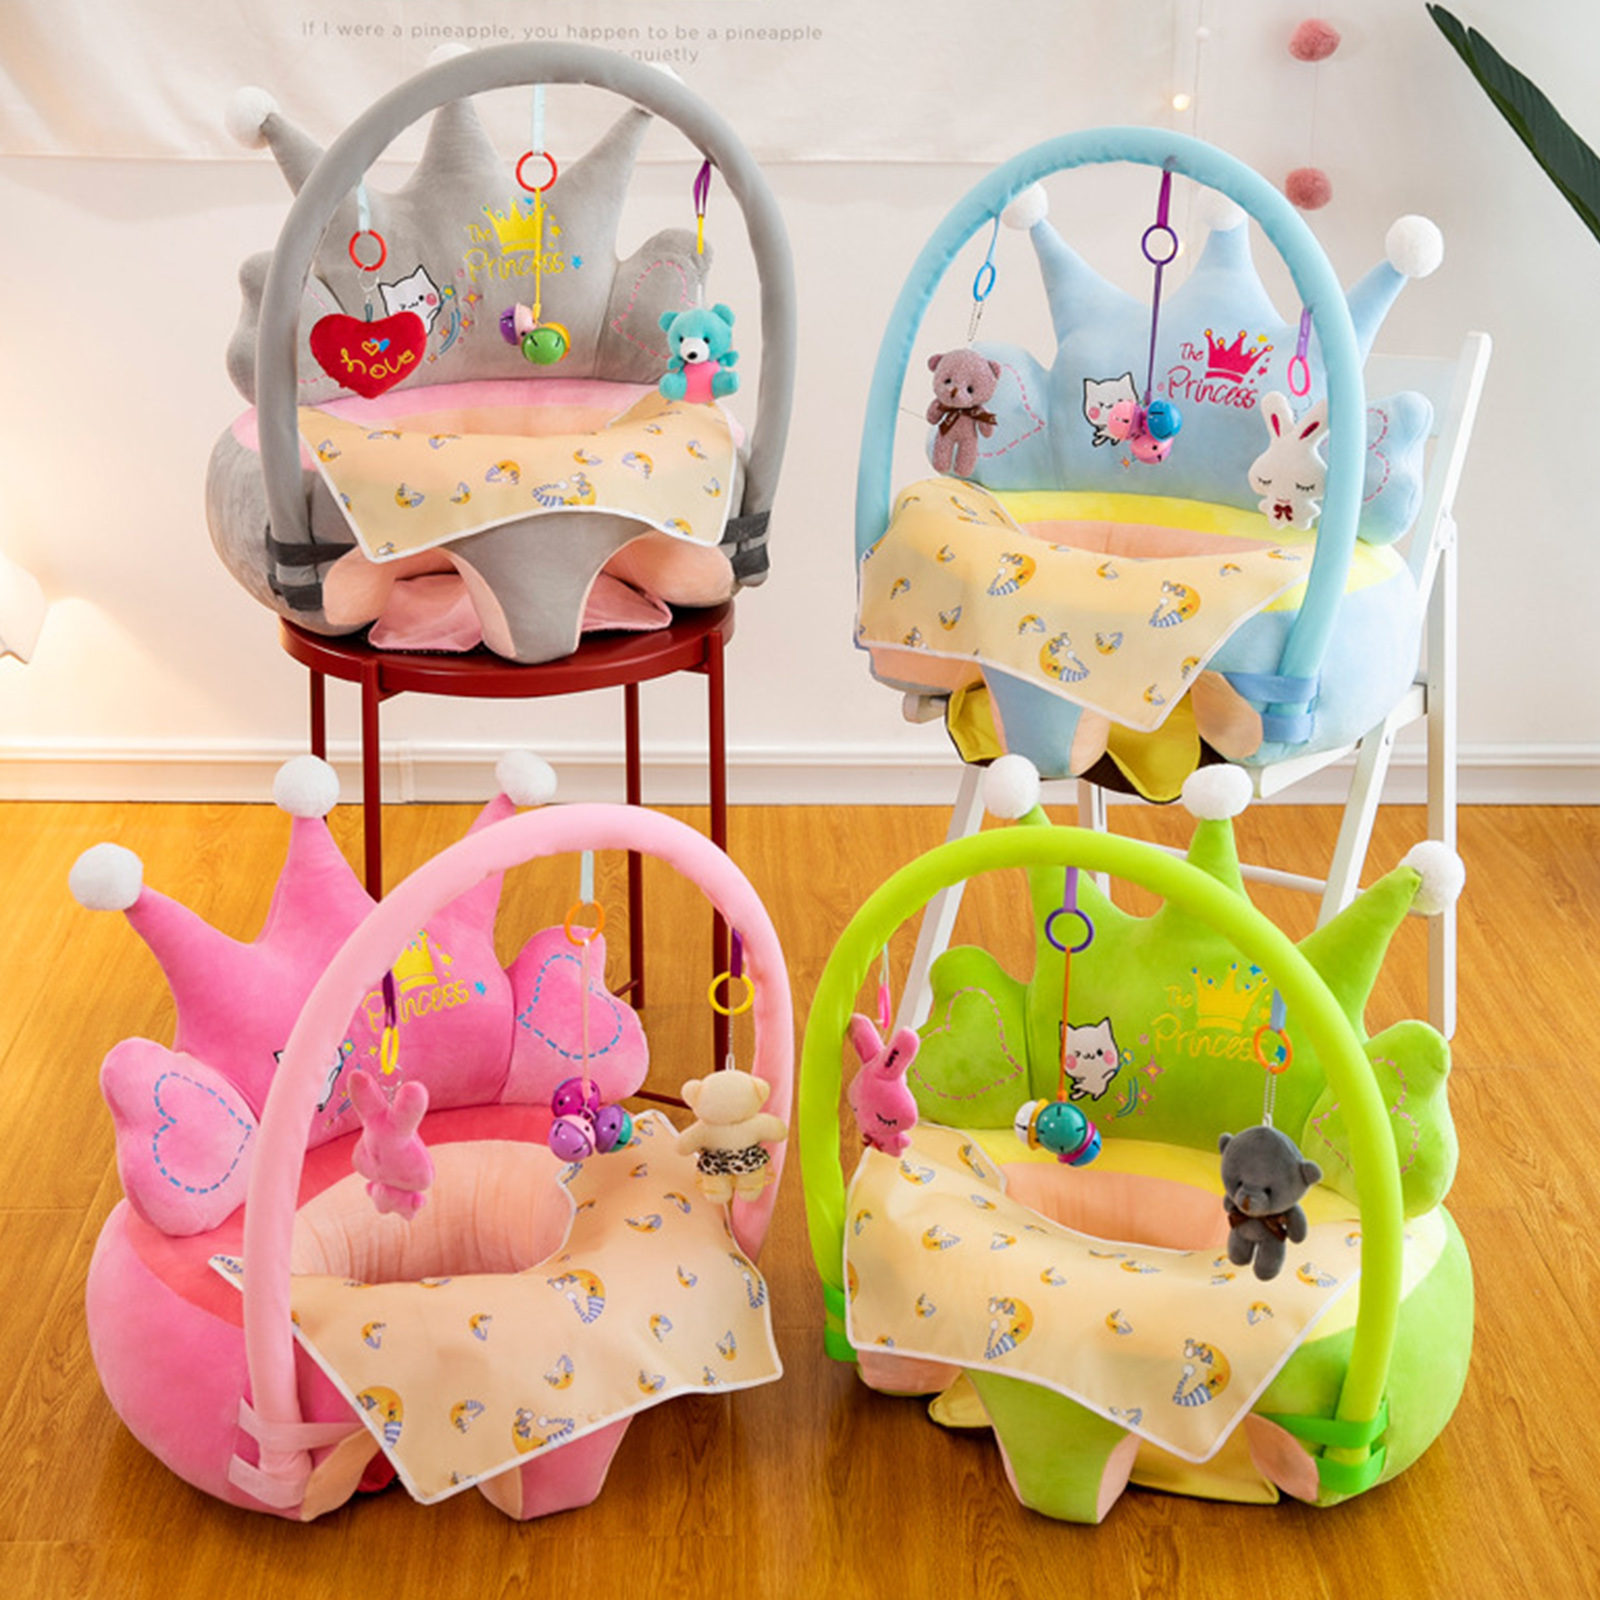 Washable Toddlers Learning To Sit 0-3Y Baby Sofa Support Seat Cover Plush Chair Baby Sofa Support Seat Cover